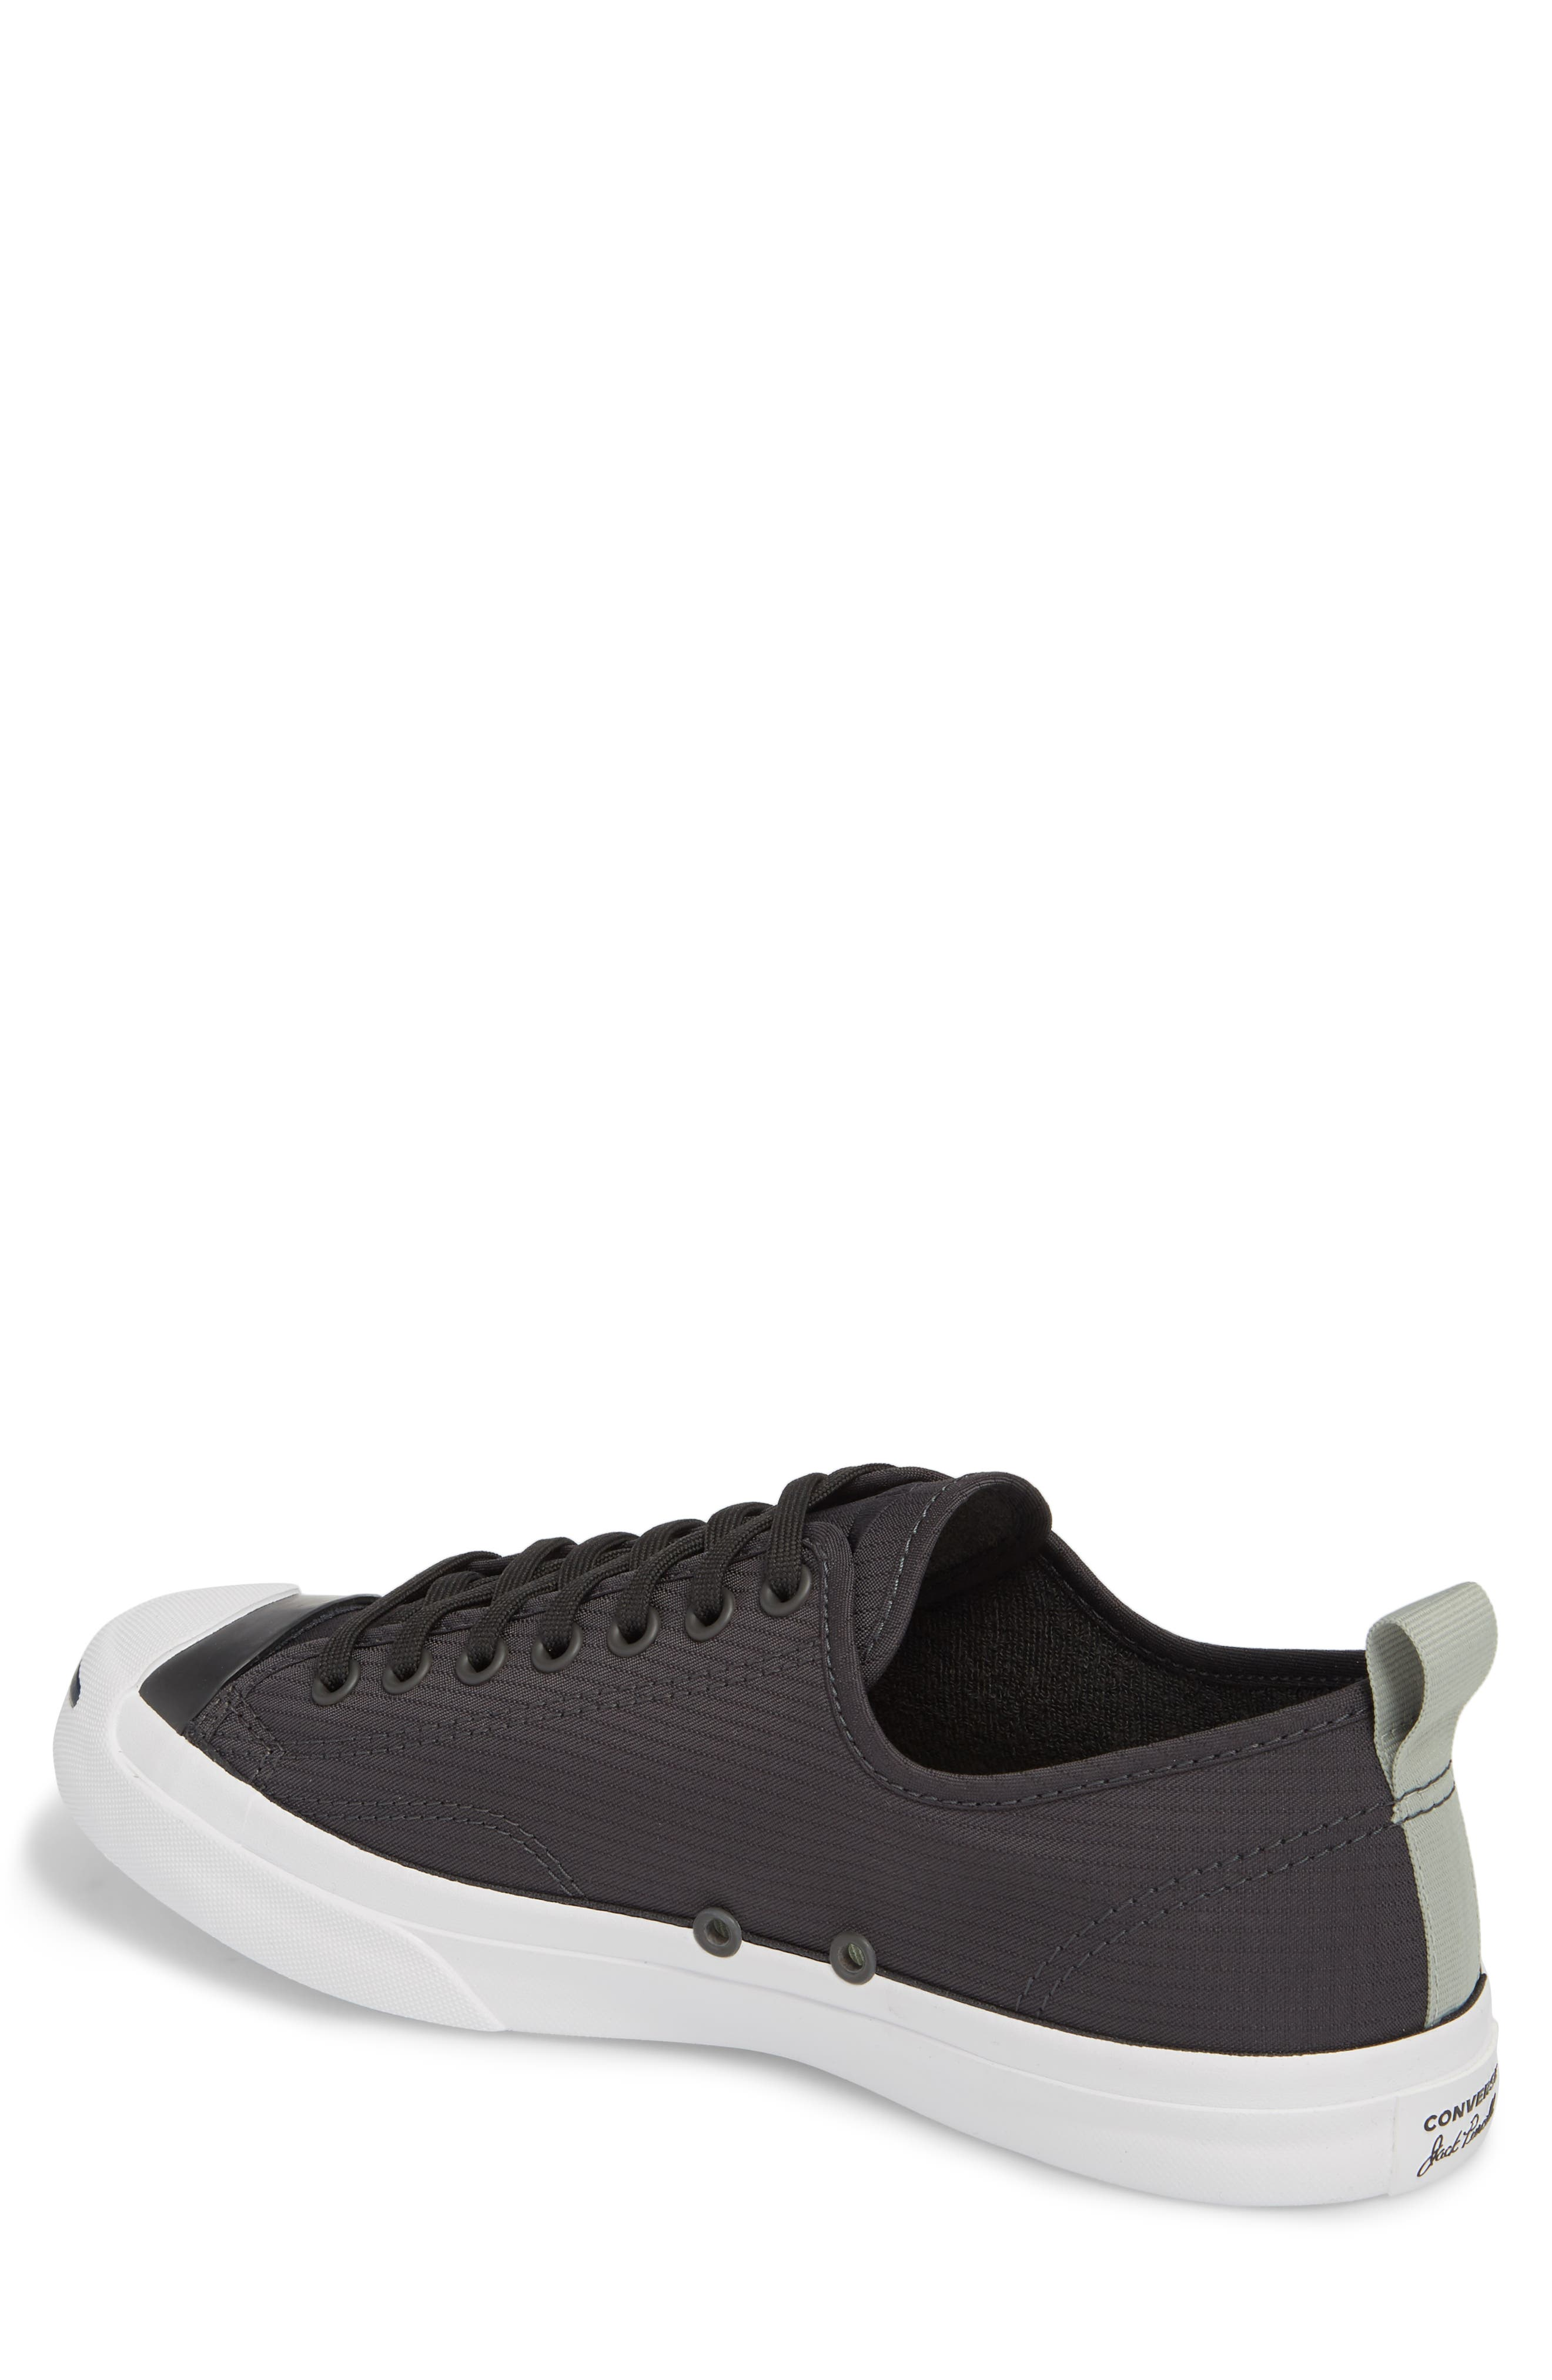 Jack Purcell Ripstop Sneaker,                             Alternate thumbnail 3, color,